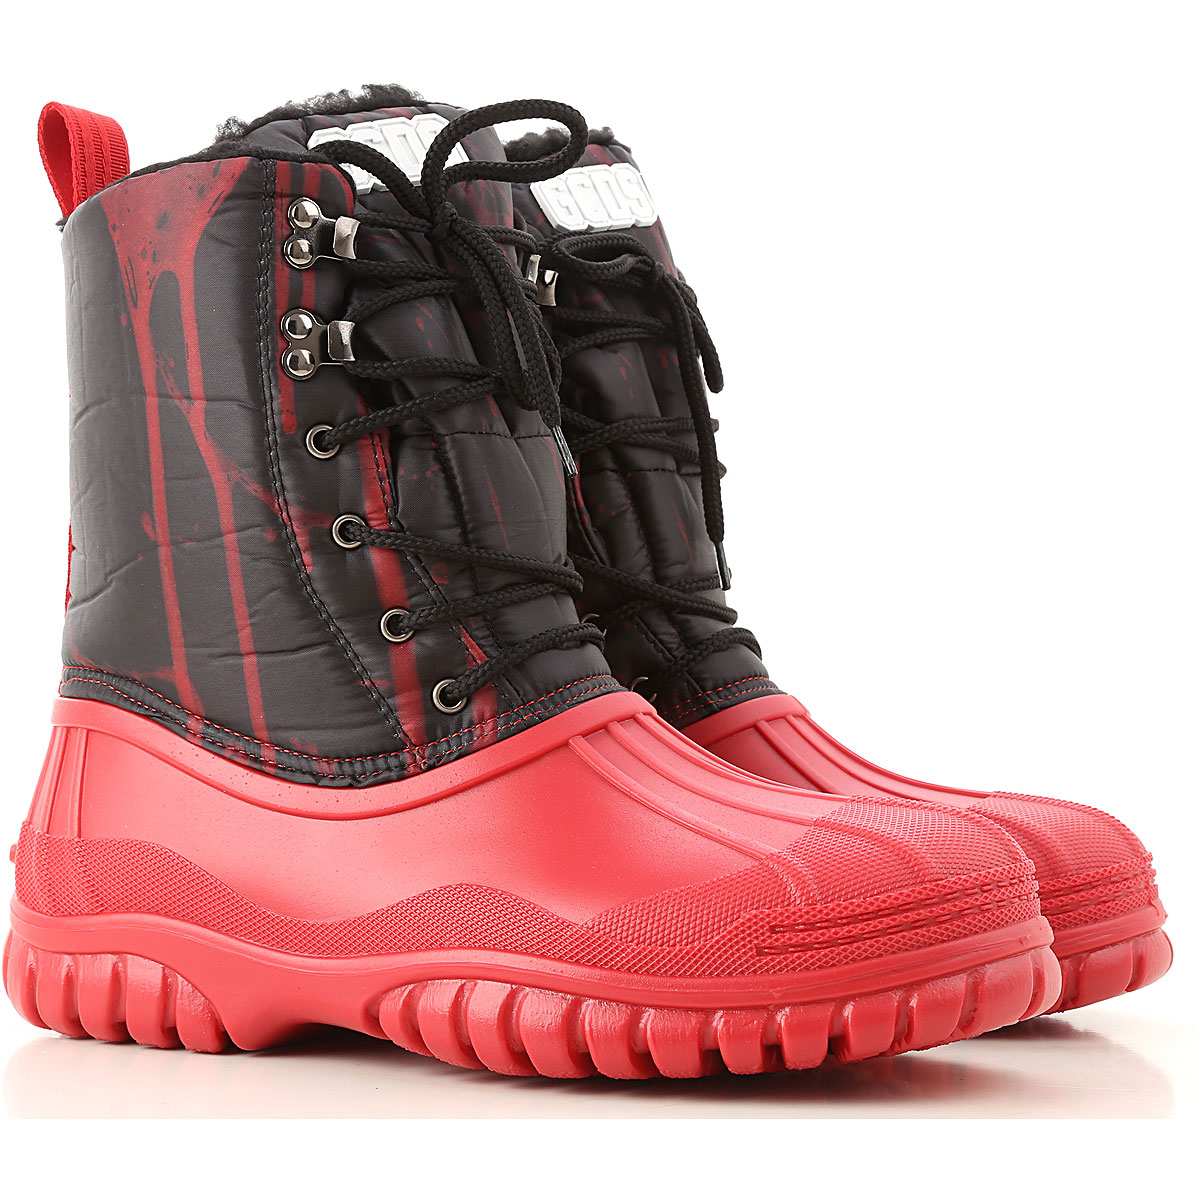 GCDS Boots for Men, Booties On Sale, Red, Nylon, 2019, 10 10.5 11.5 7.5 8 9